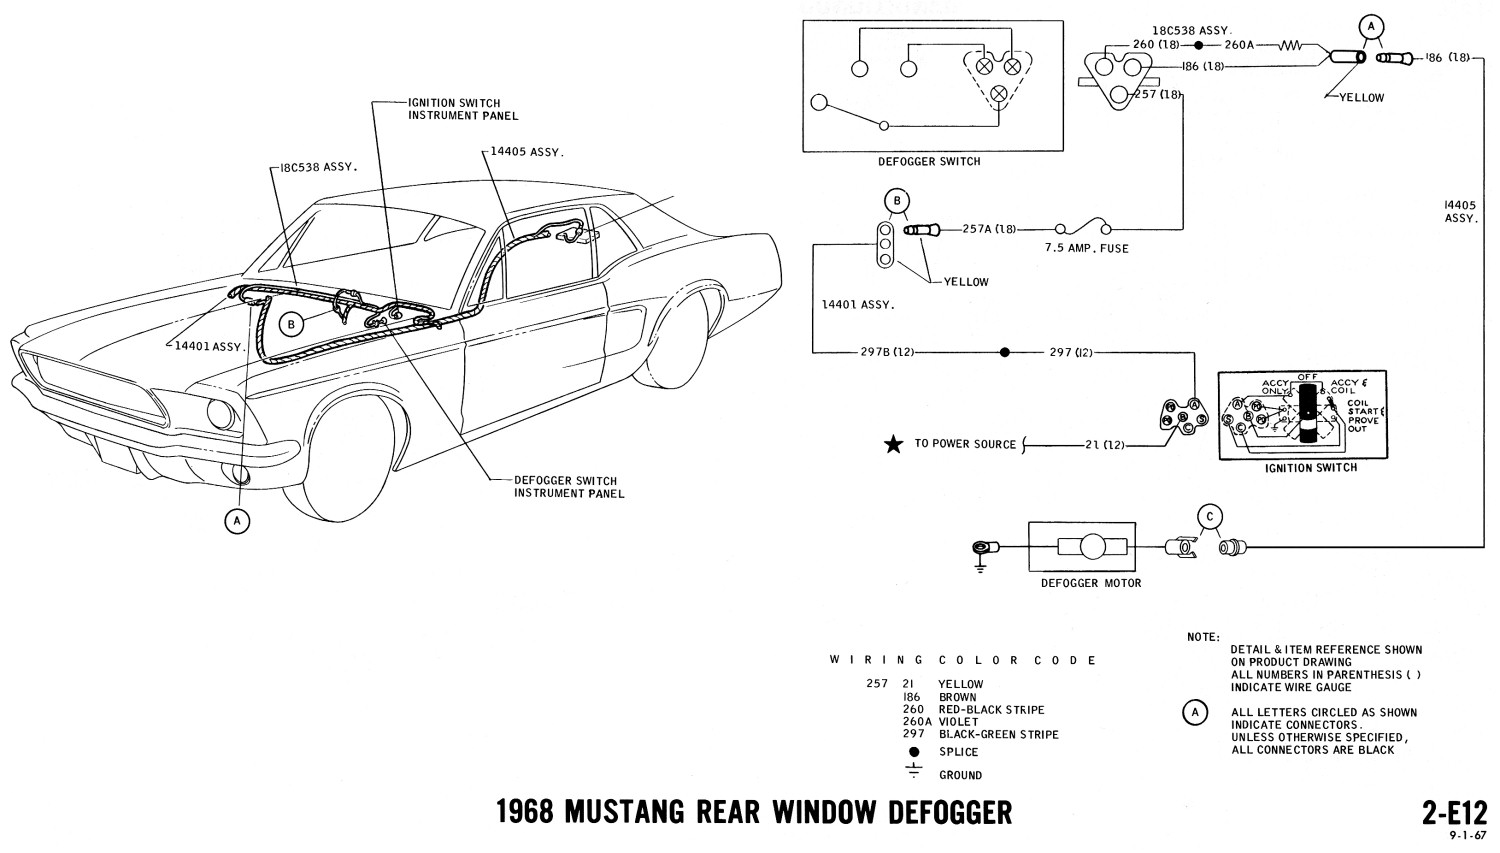 1968 mustang wiring diagrams with switchboard wiring diagram, Wiring diagram